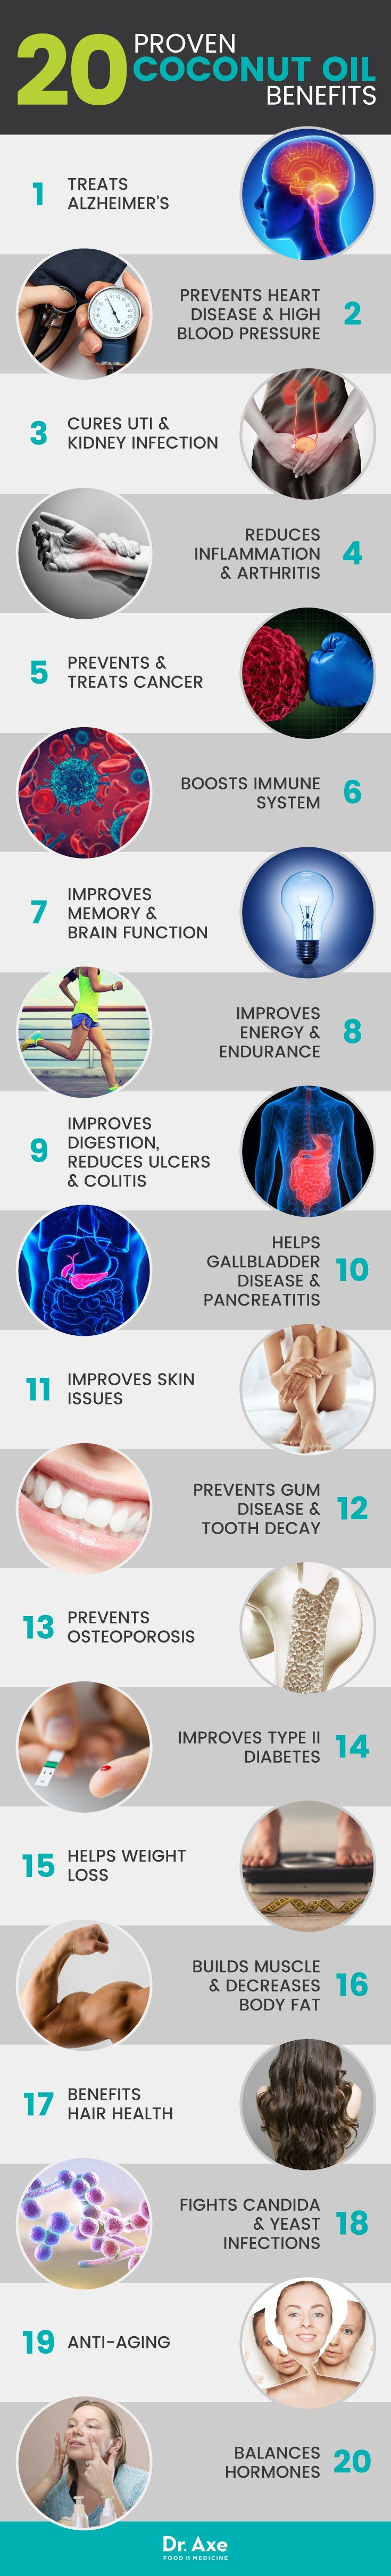 The 20 Powerful Coconut Oil Benefits & Side Effects (#5 is Life Saving)